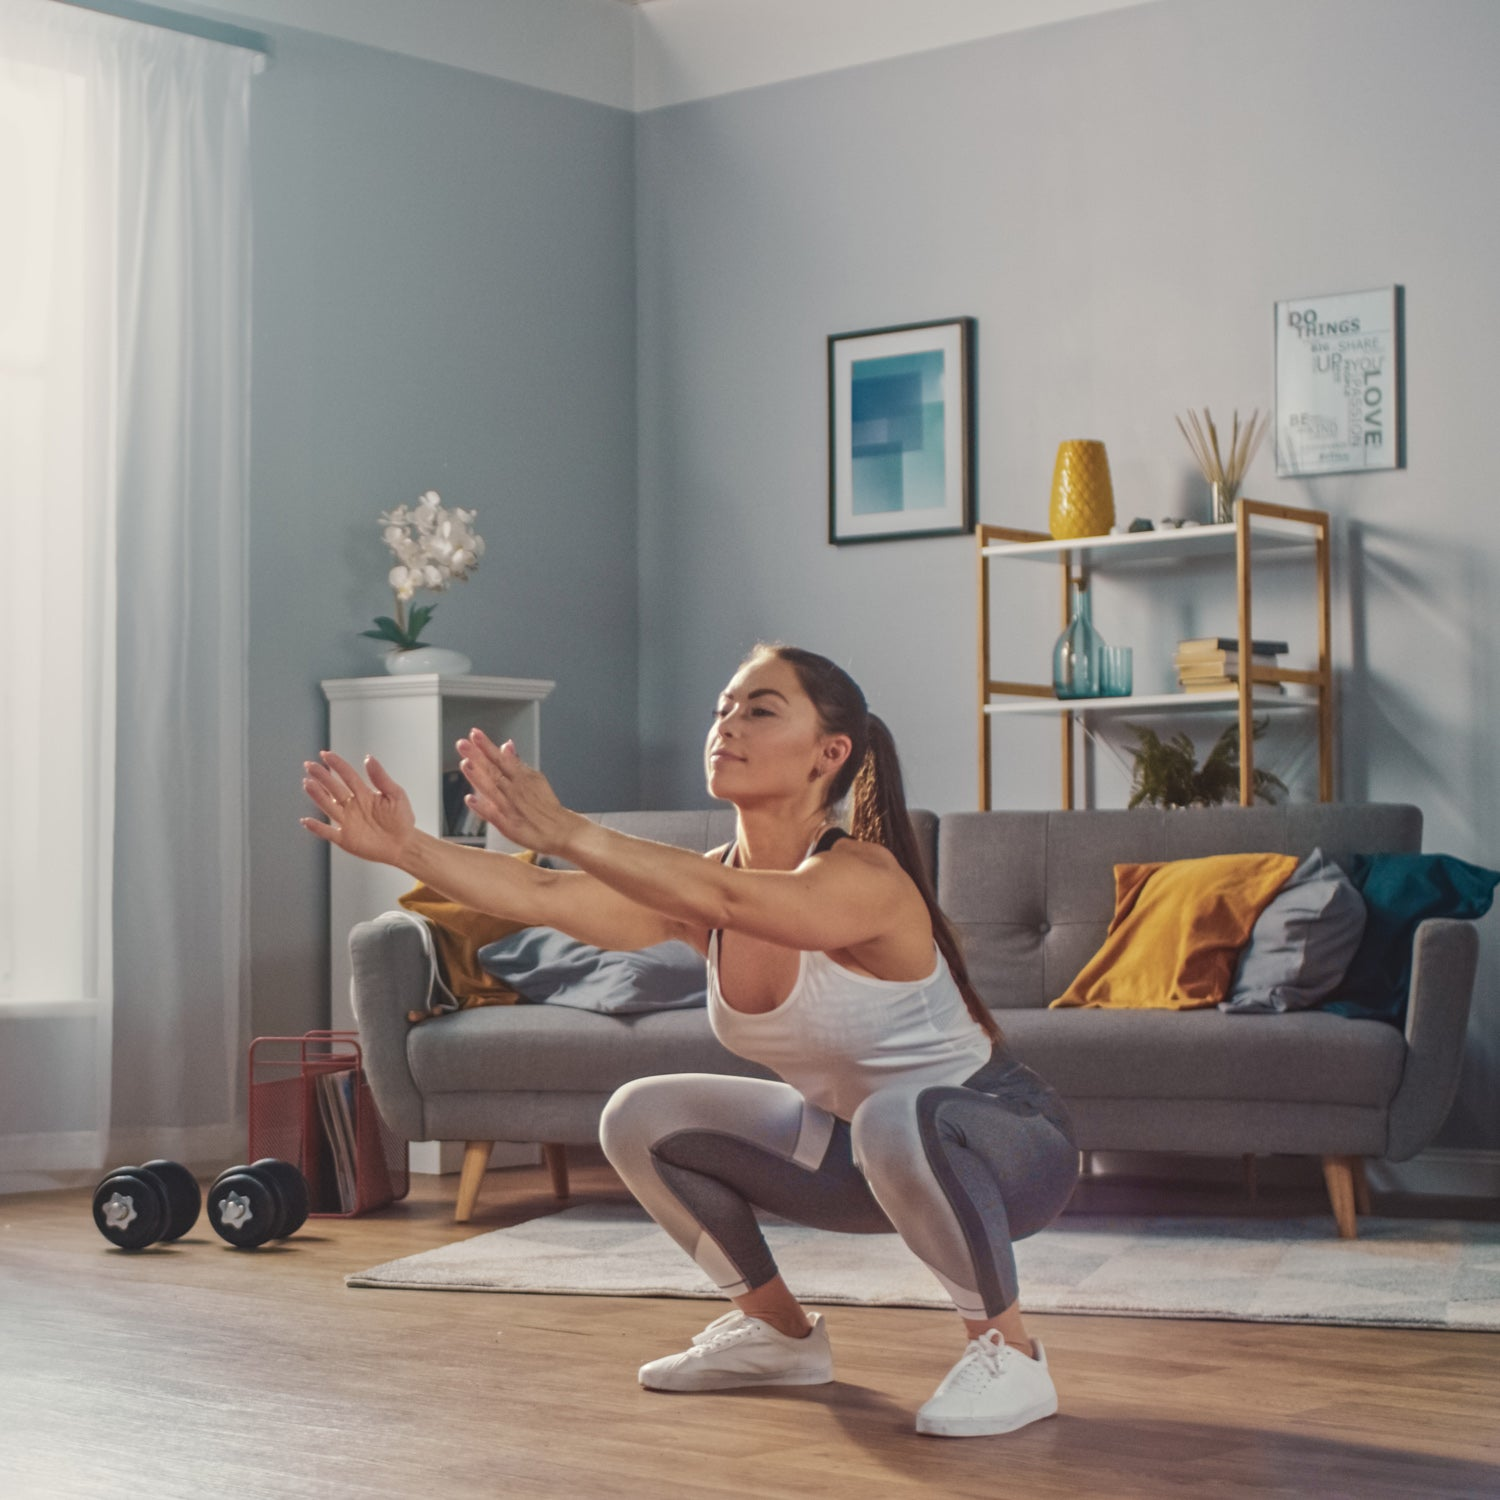 5 Ways Athletes Can Improve Fitness When Working From Home